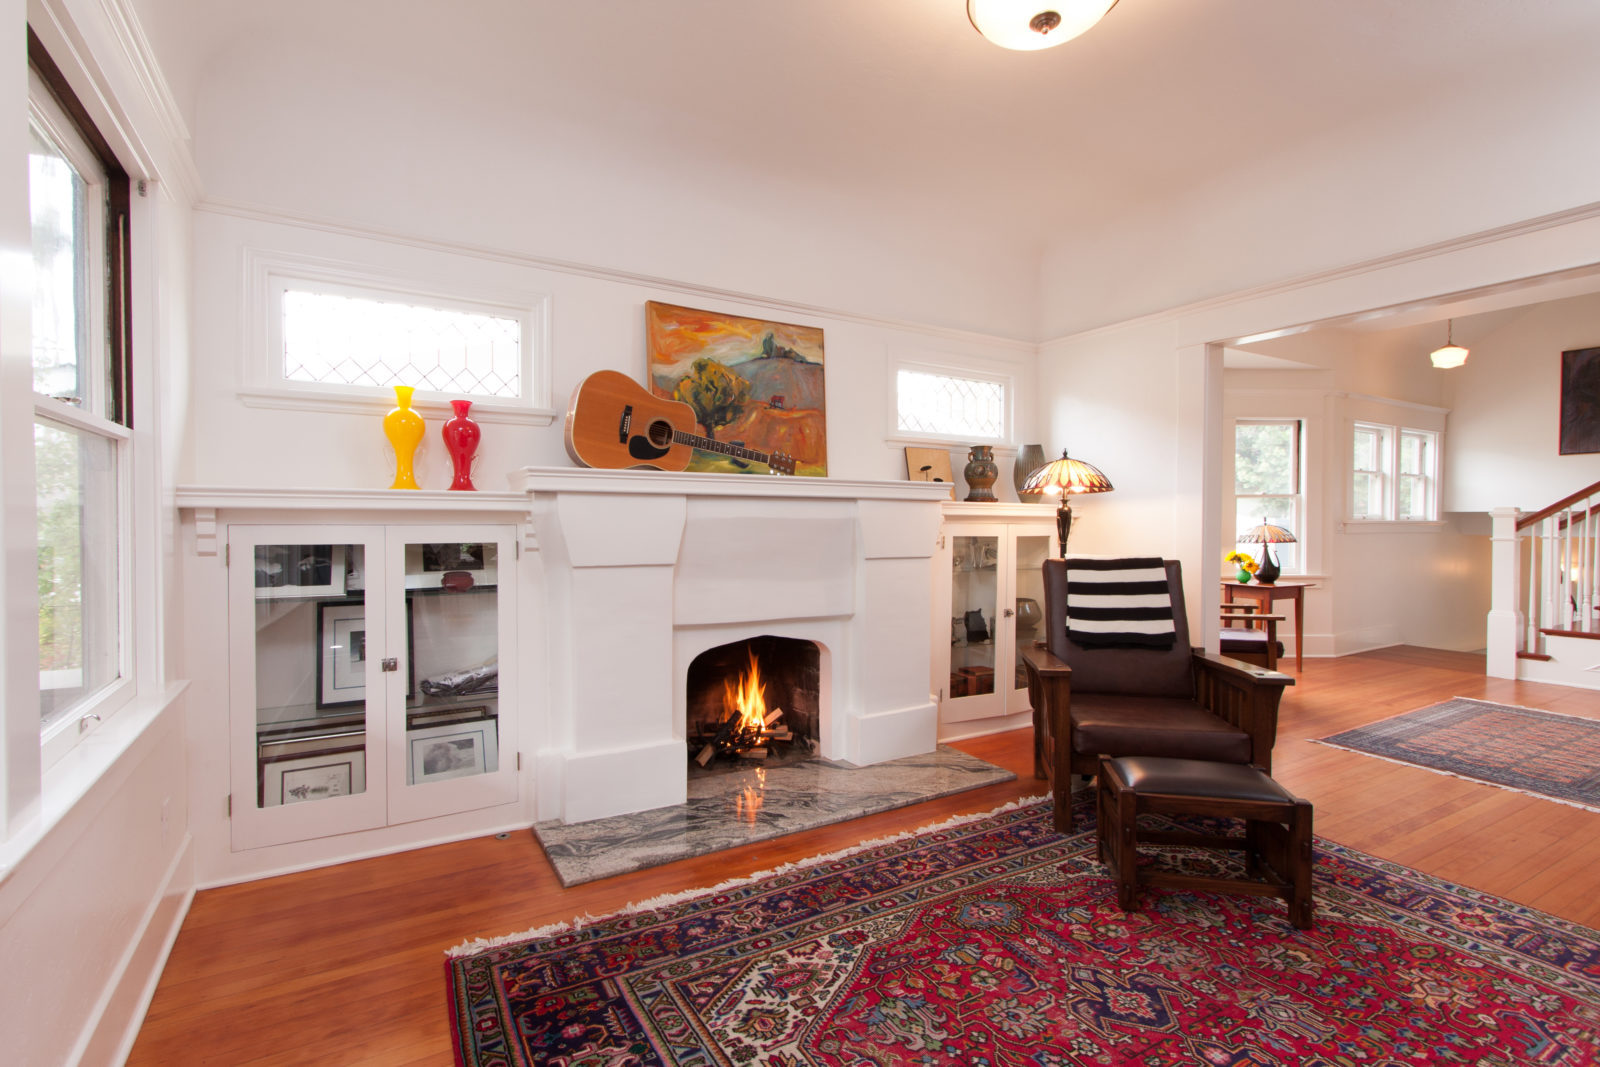 Original Plaster Fireplace Updated